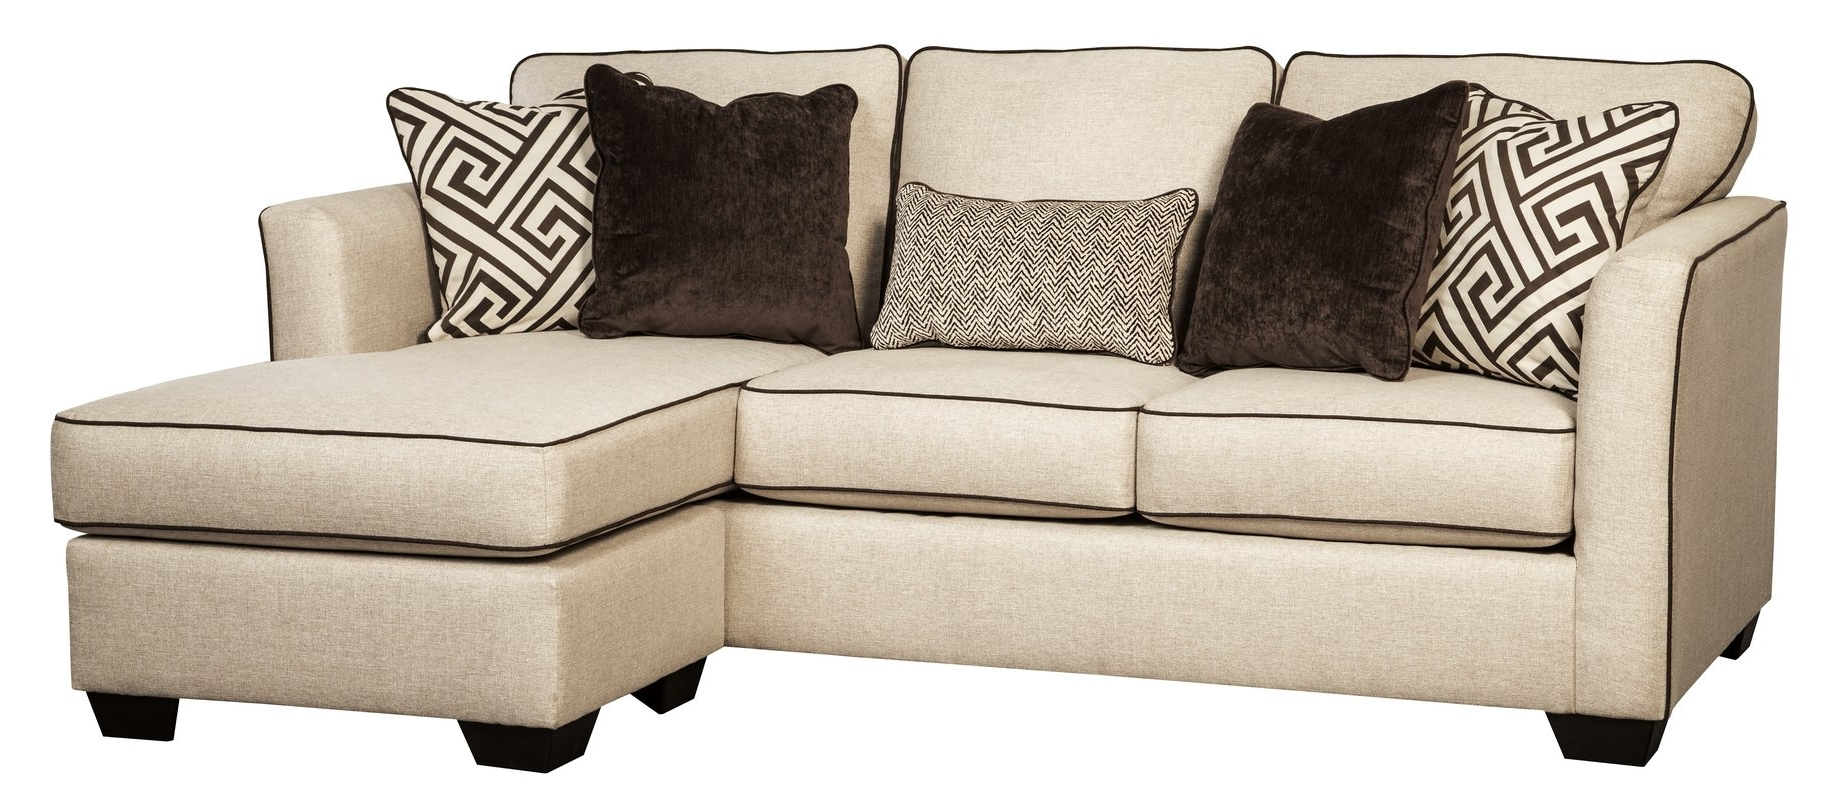 Benchcraft Carlinworth Sofa Chaise Sleeper & Reviews (View 5 of 15)